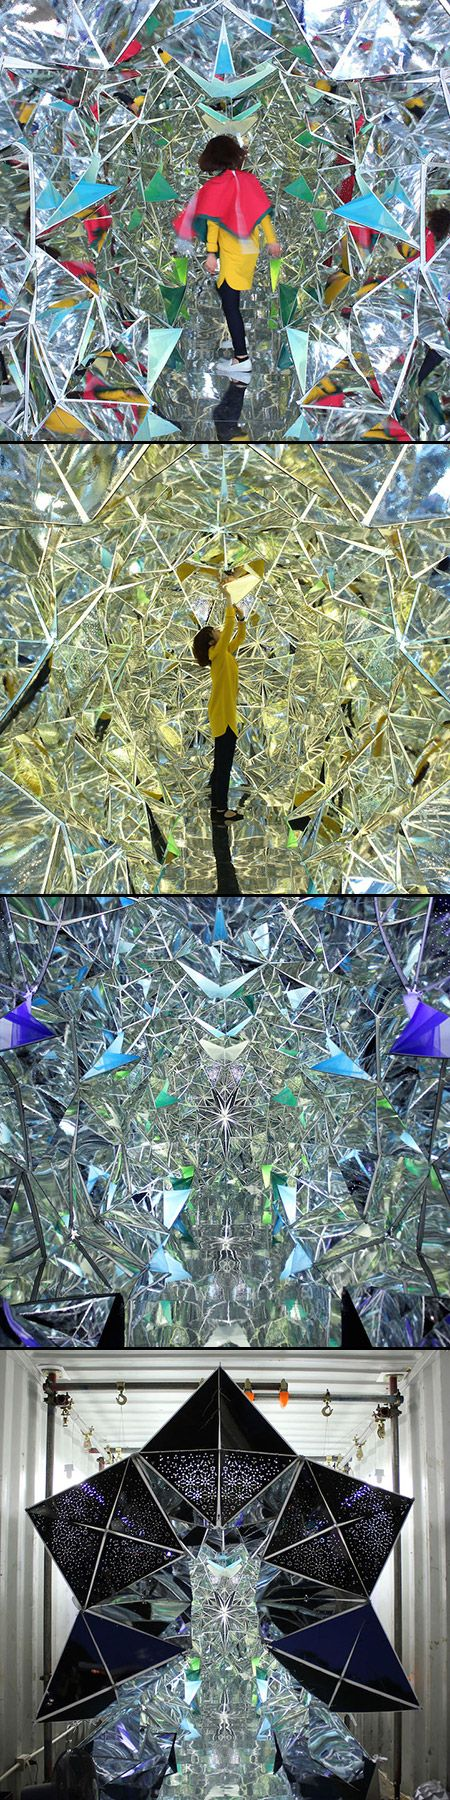 This is Not a Computer-Generated Illusion, Just a Real Immersive Kaleidoscope Tunnel - TechEBlog